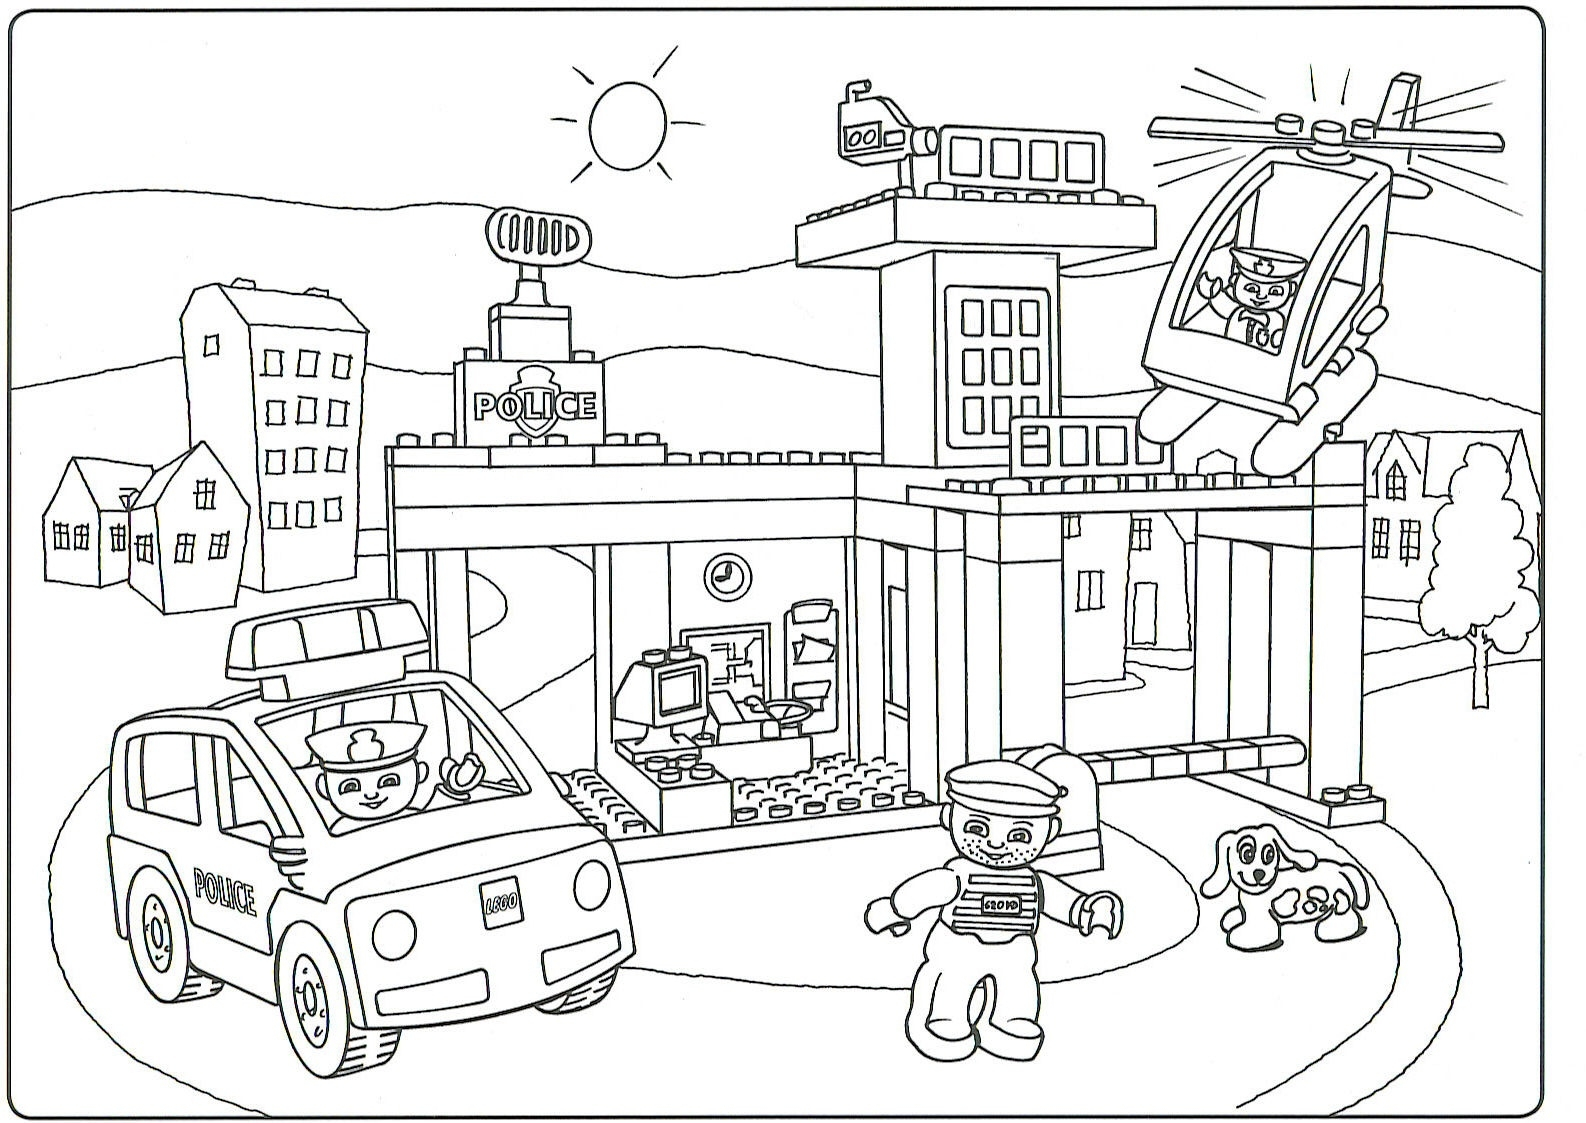 Lego City Coloring Pages  to Print 11h - Free For kids